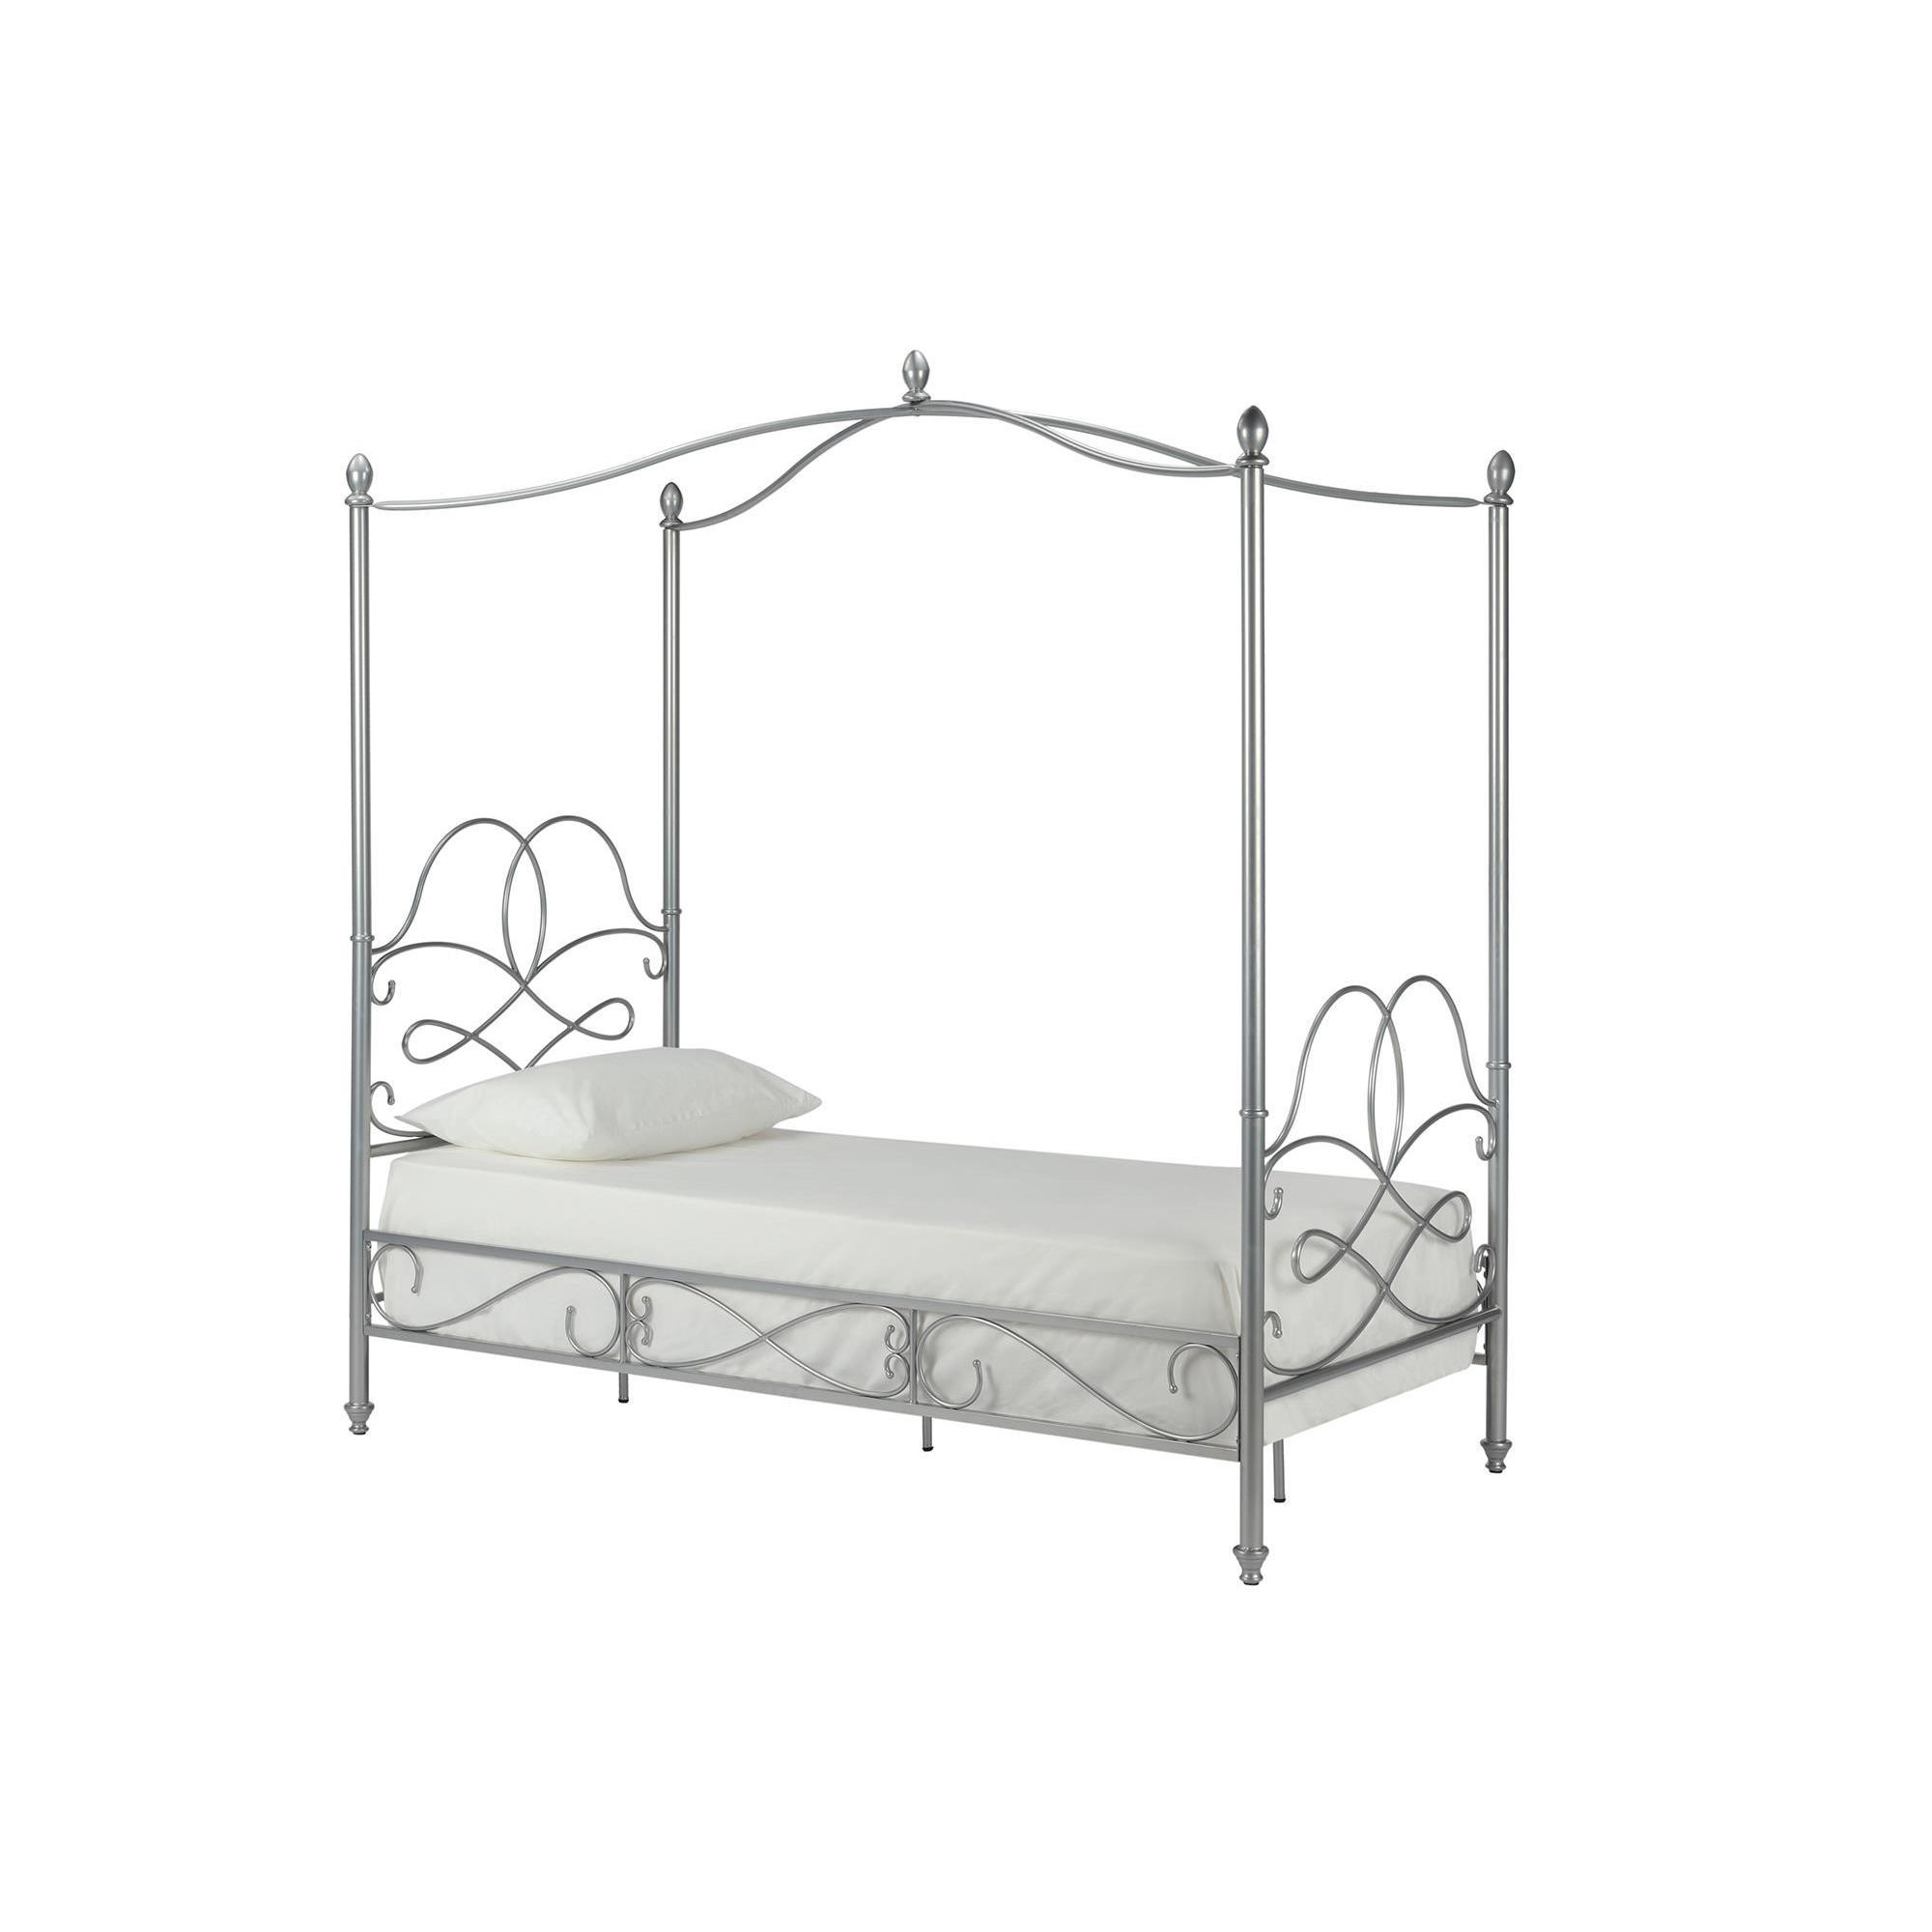 Shop DHP Fancy Silver Metal Canopy Twin Bed - Ships To Canada ...